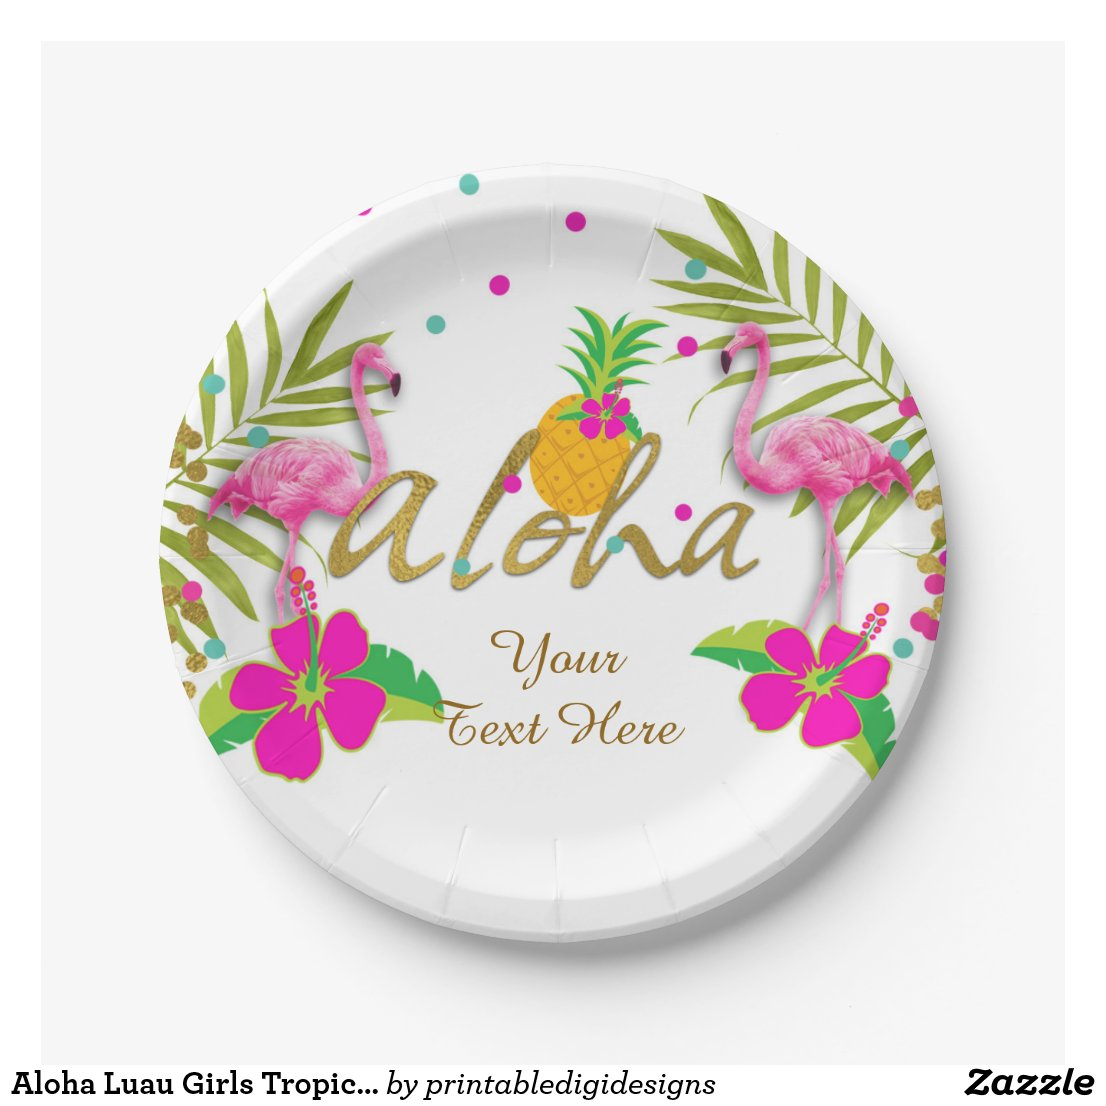 Aloha Luau Girls Tropical Flamingo Birthday Party